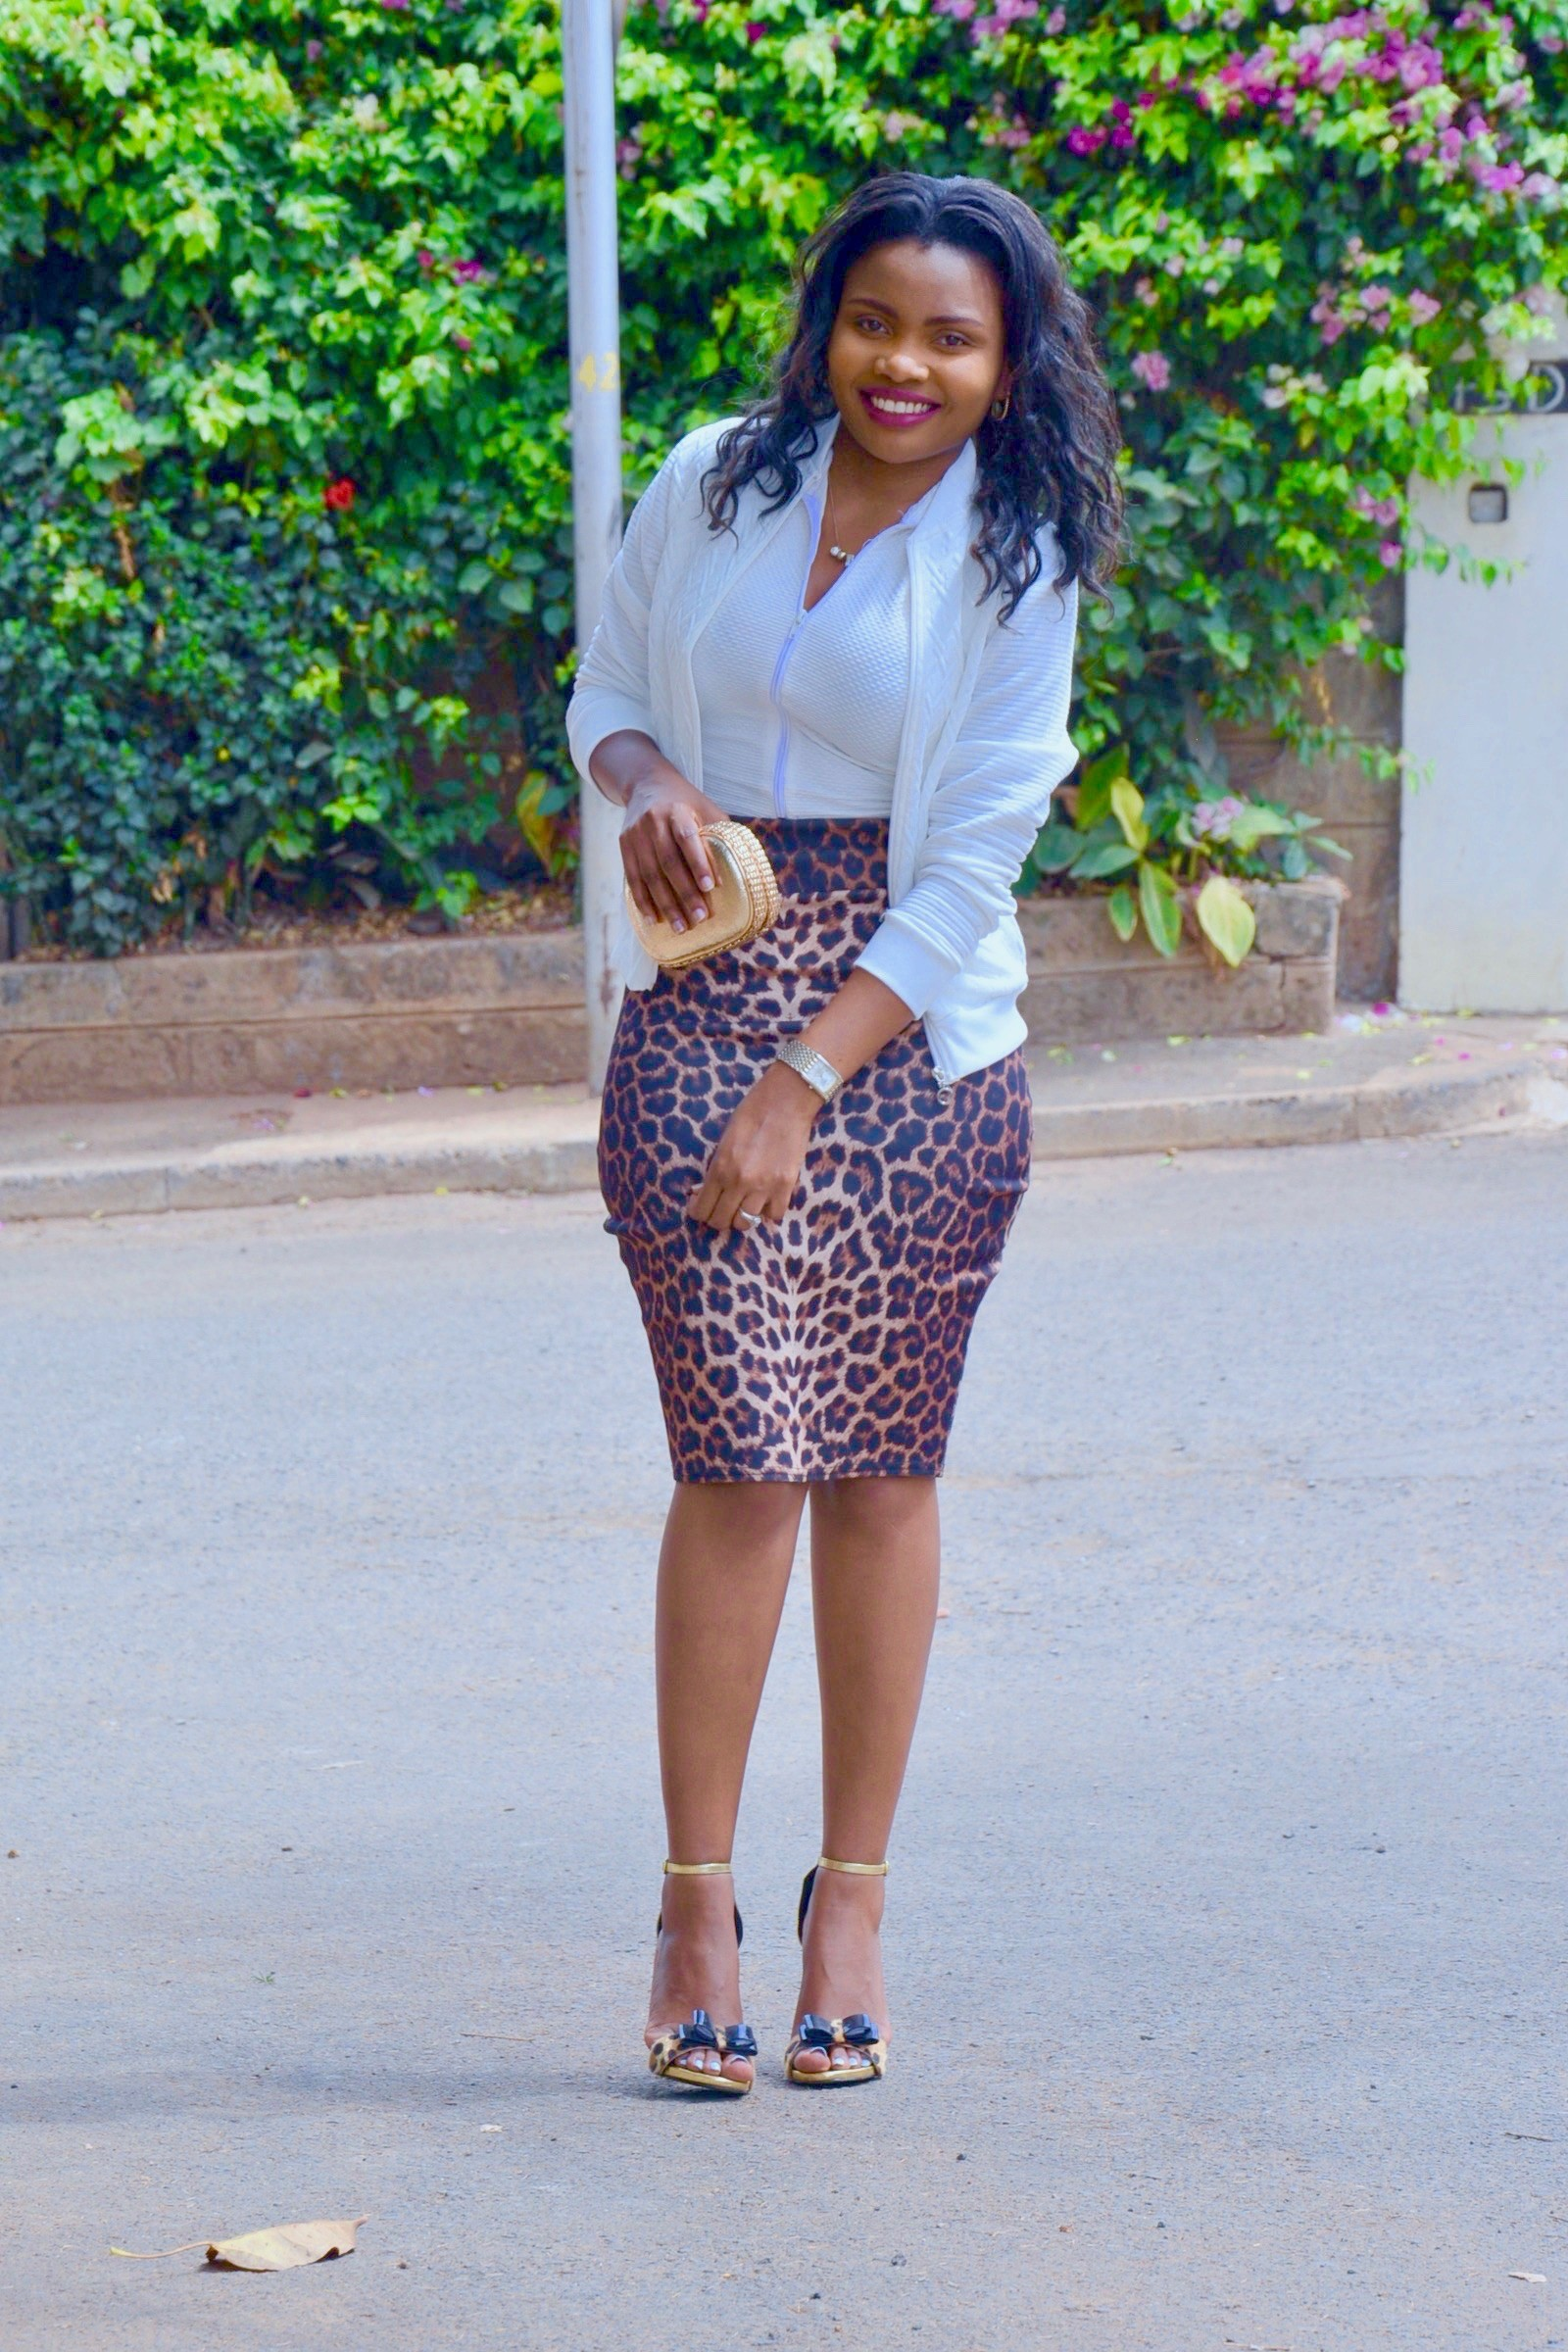 WHITE BOMBER JACKET & ANIMAL PRINT SKIRT